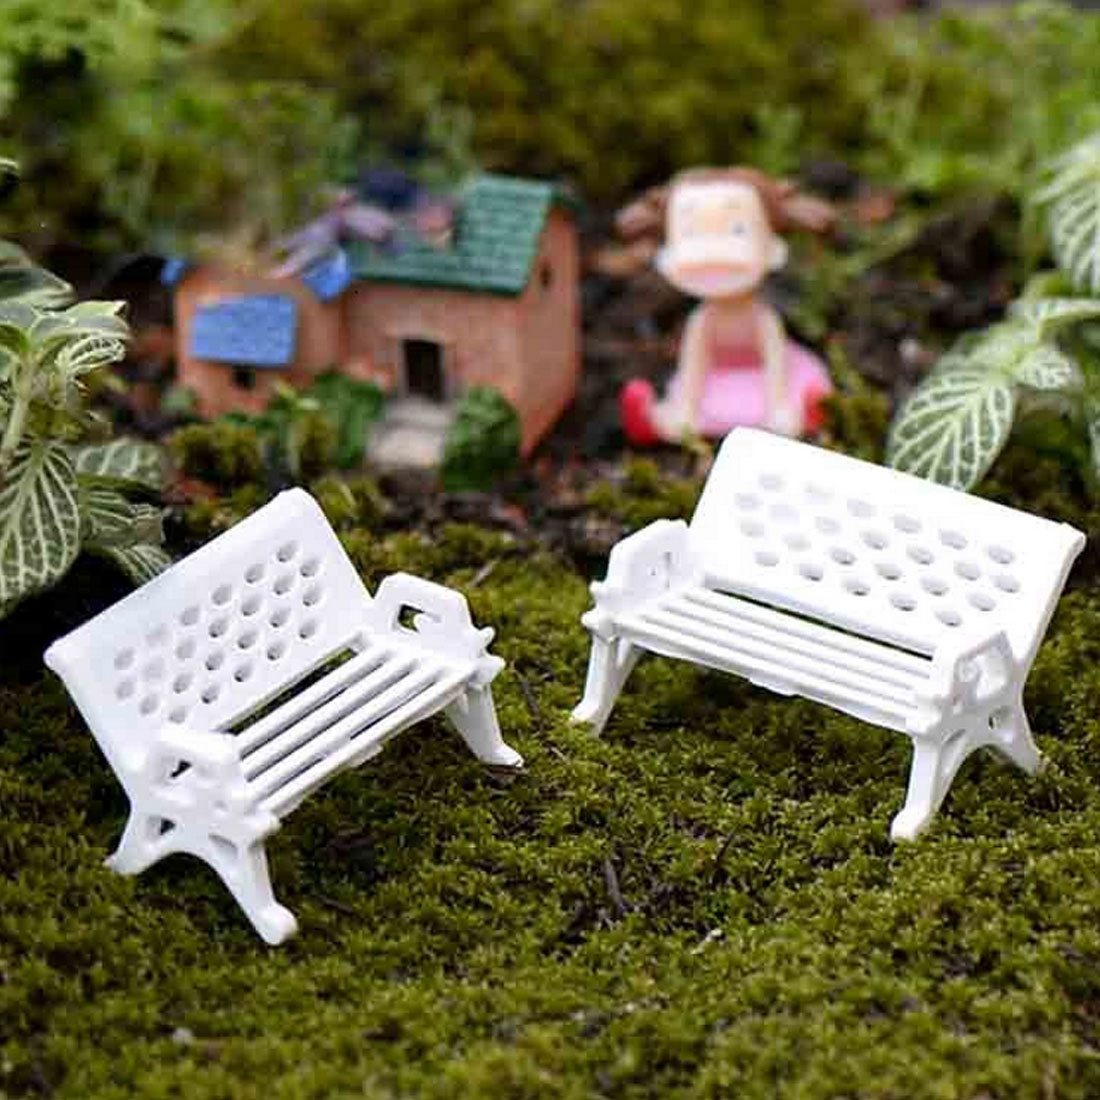 Home 2Pcs white chair bench doll house miniatures lovely cute fairy garden gnome moss terrarium decor crafts bonsai DIY